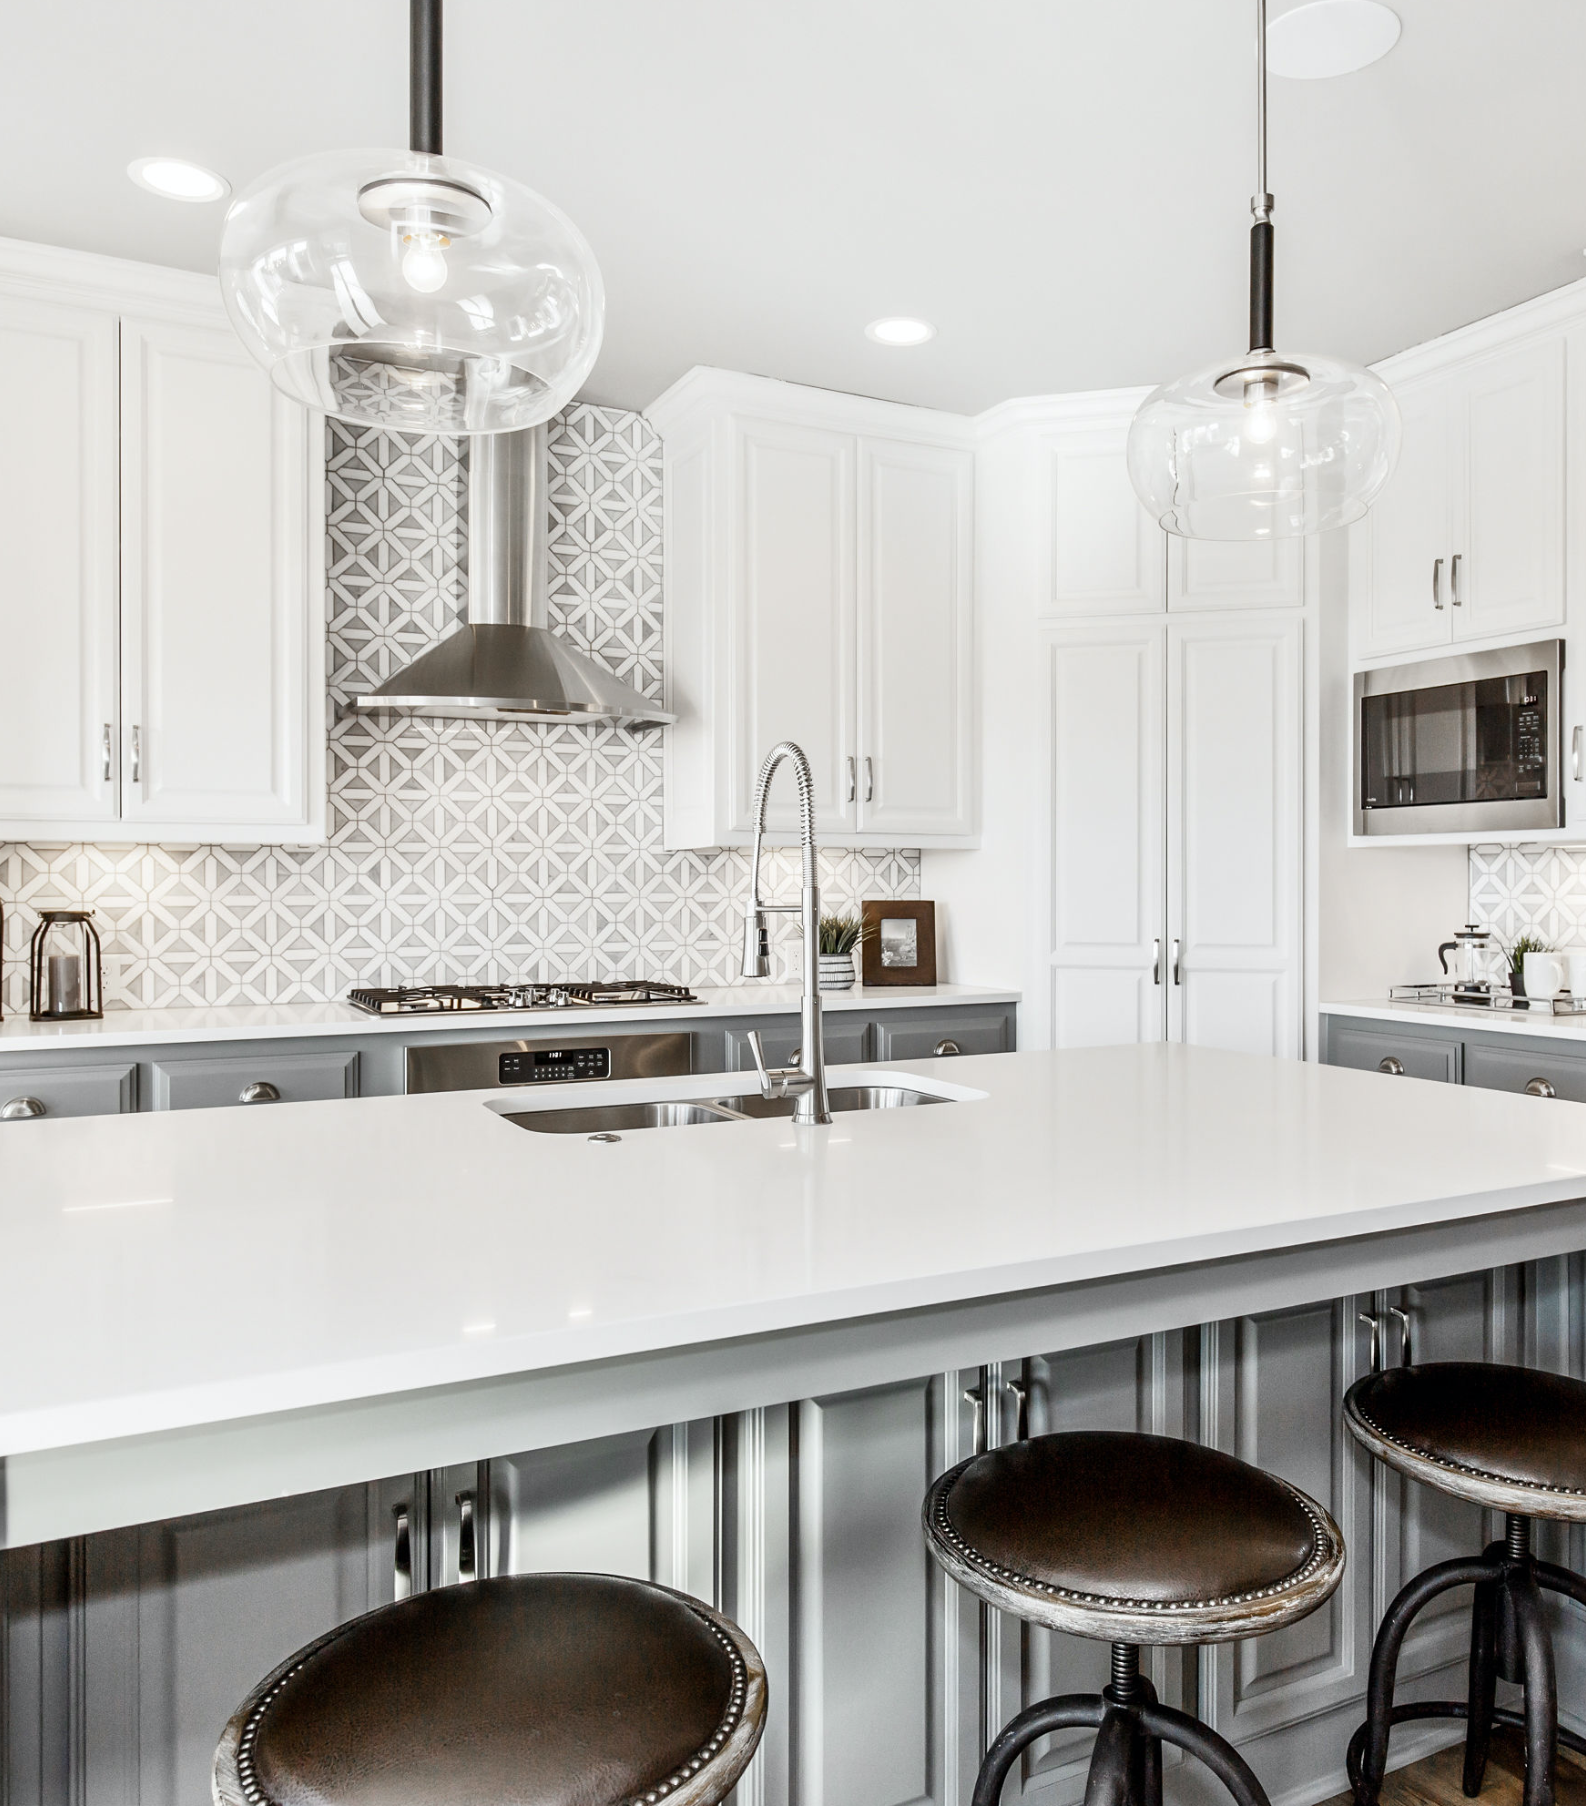 The Azalea By Roeser Homes 25769 W 96th St Lenexa Ks 66227 Canyon Creek Point Our Beautiful Azalea Model H Kitchen Cabinet Color Options Home Home Kitchens